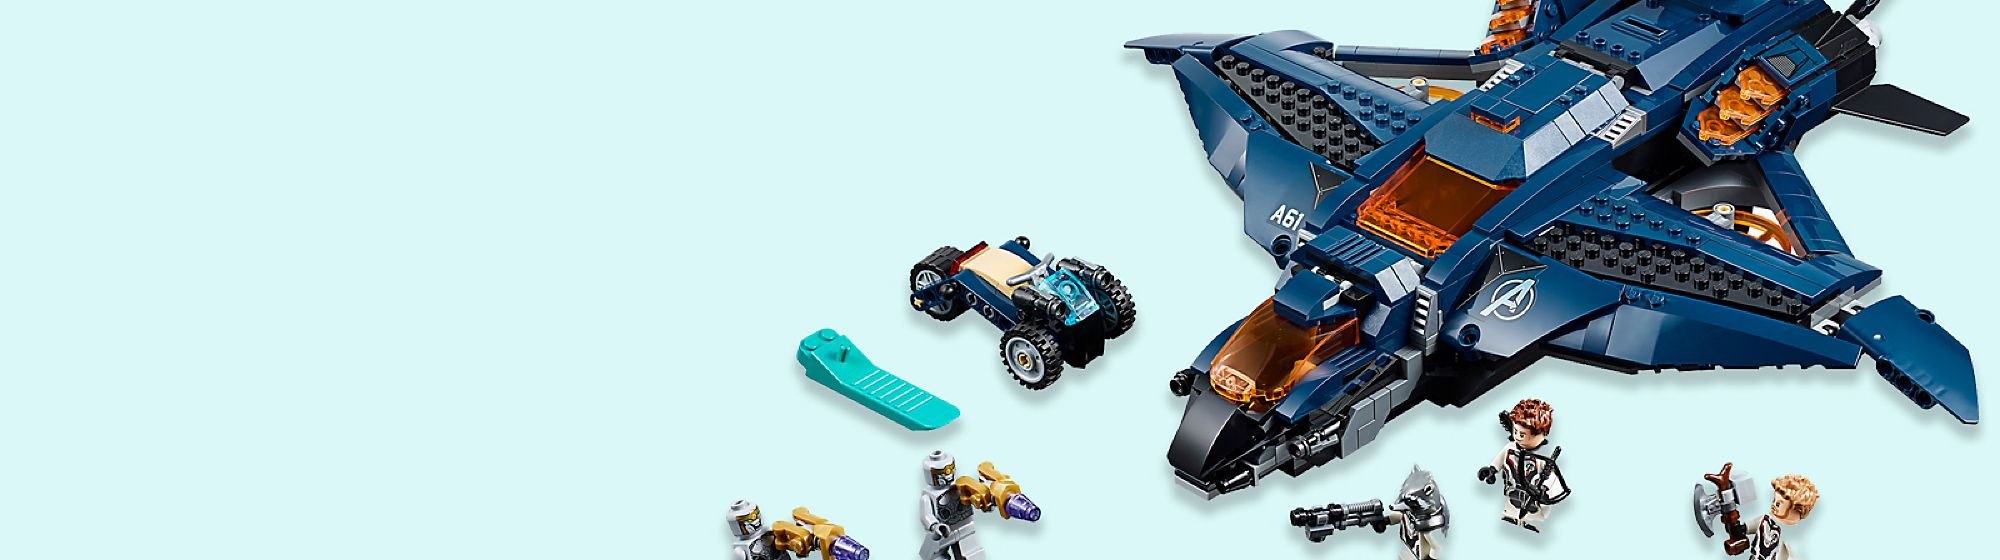 Construction Get building with our range of construction toys from Disney, Pixar, Star Wars and Marvel